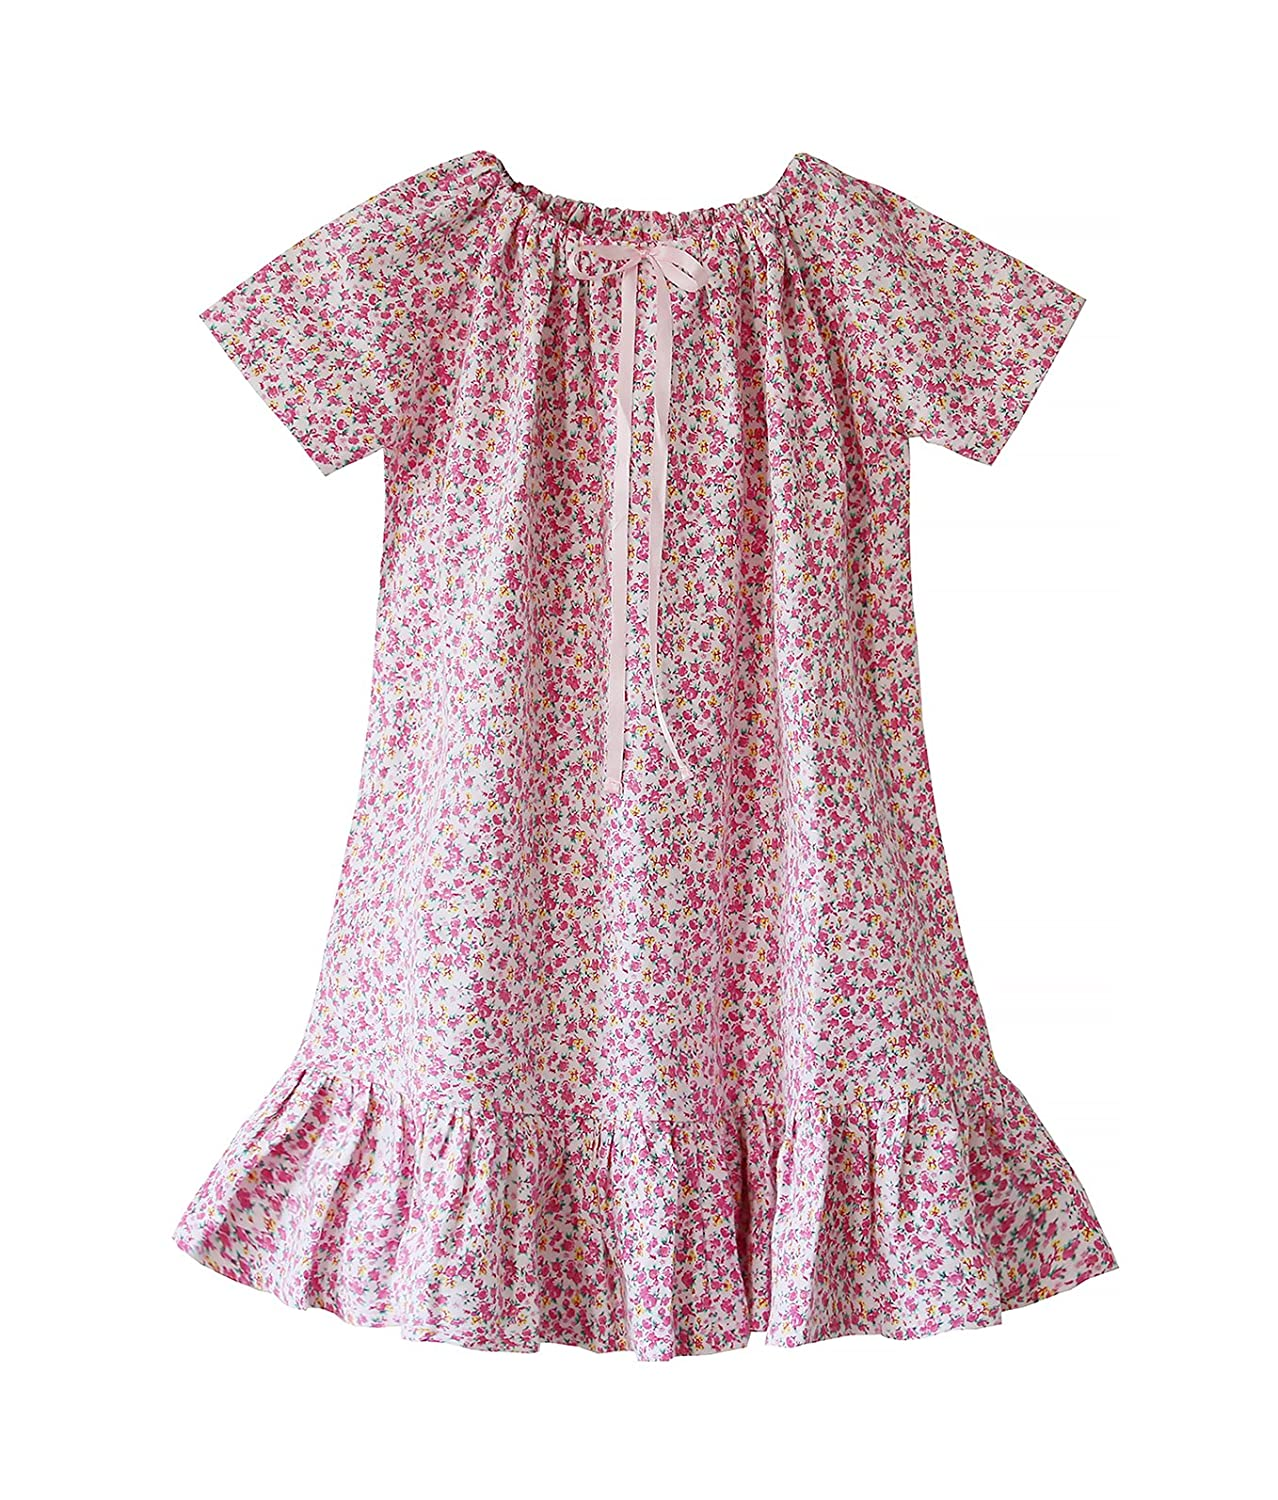 Bonné Girl Girls Nightdress 100% Cotton Flora Soft Nightie 6-7 Years